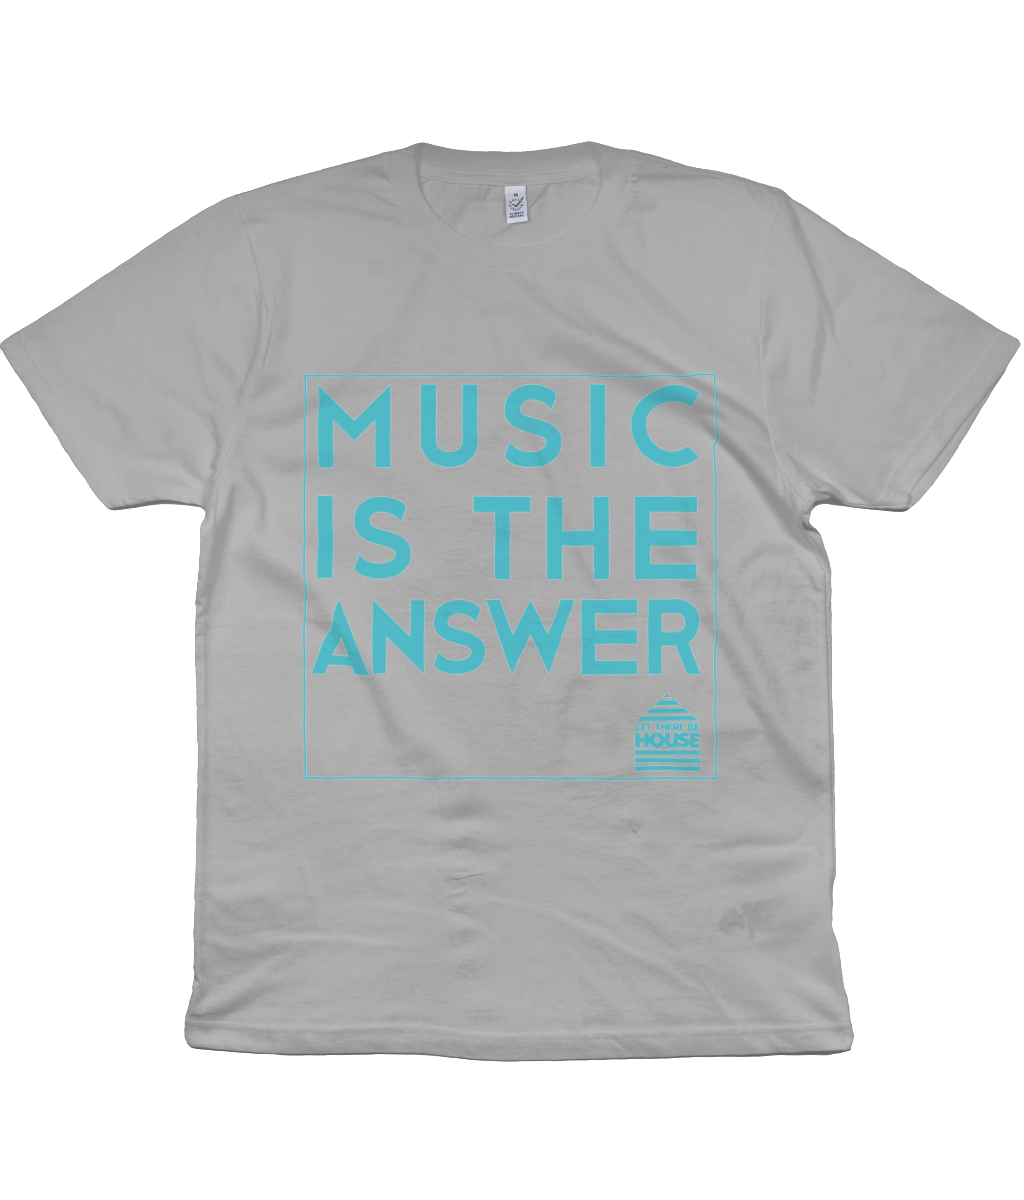 T-Shirt Music Blue